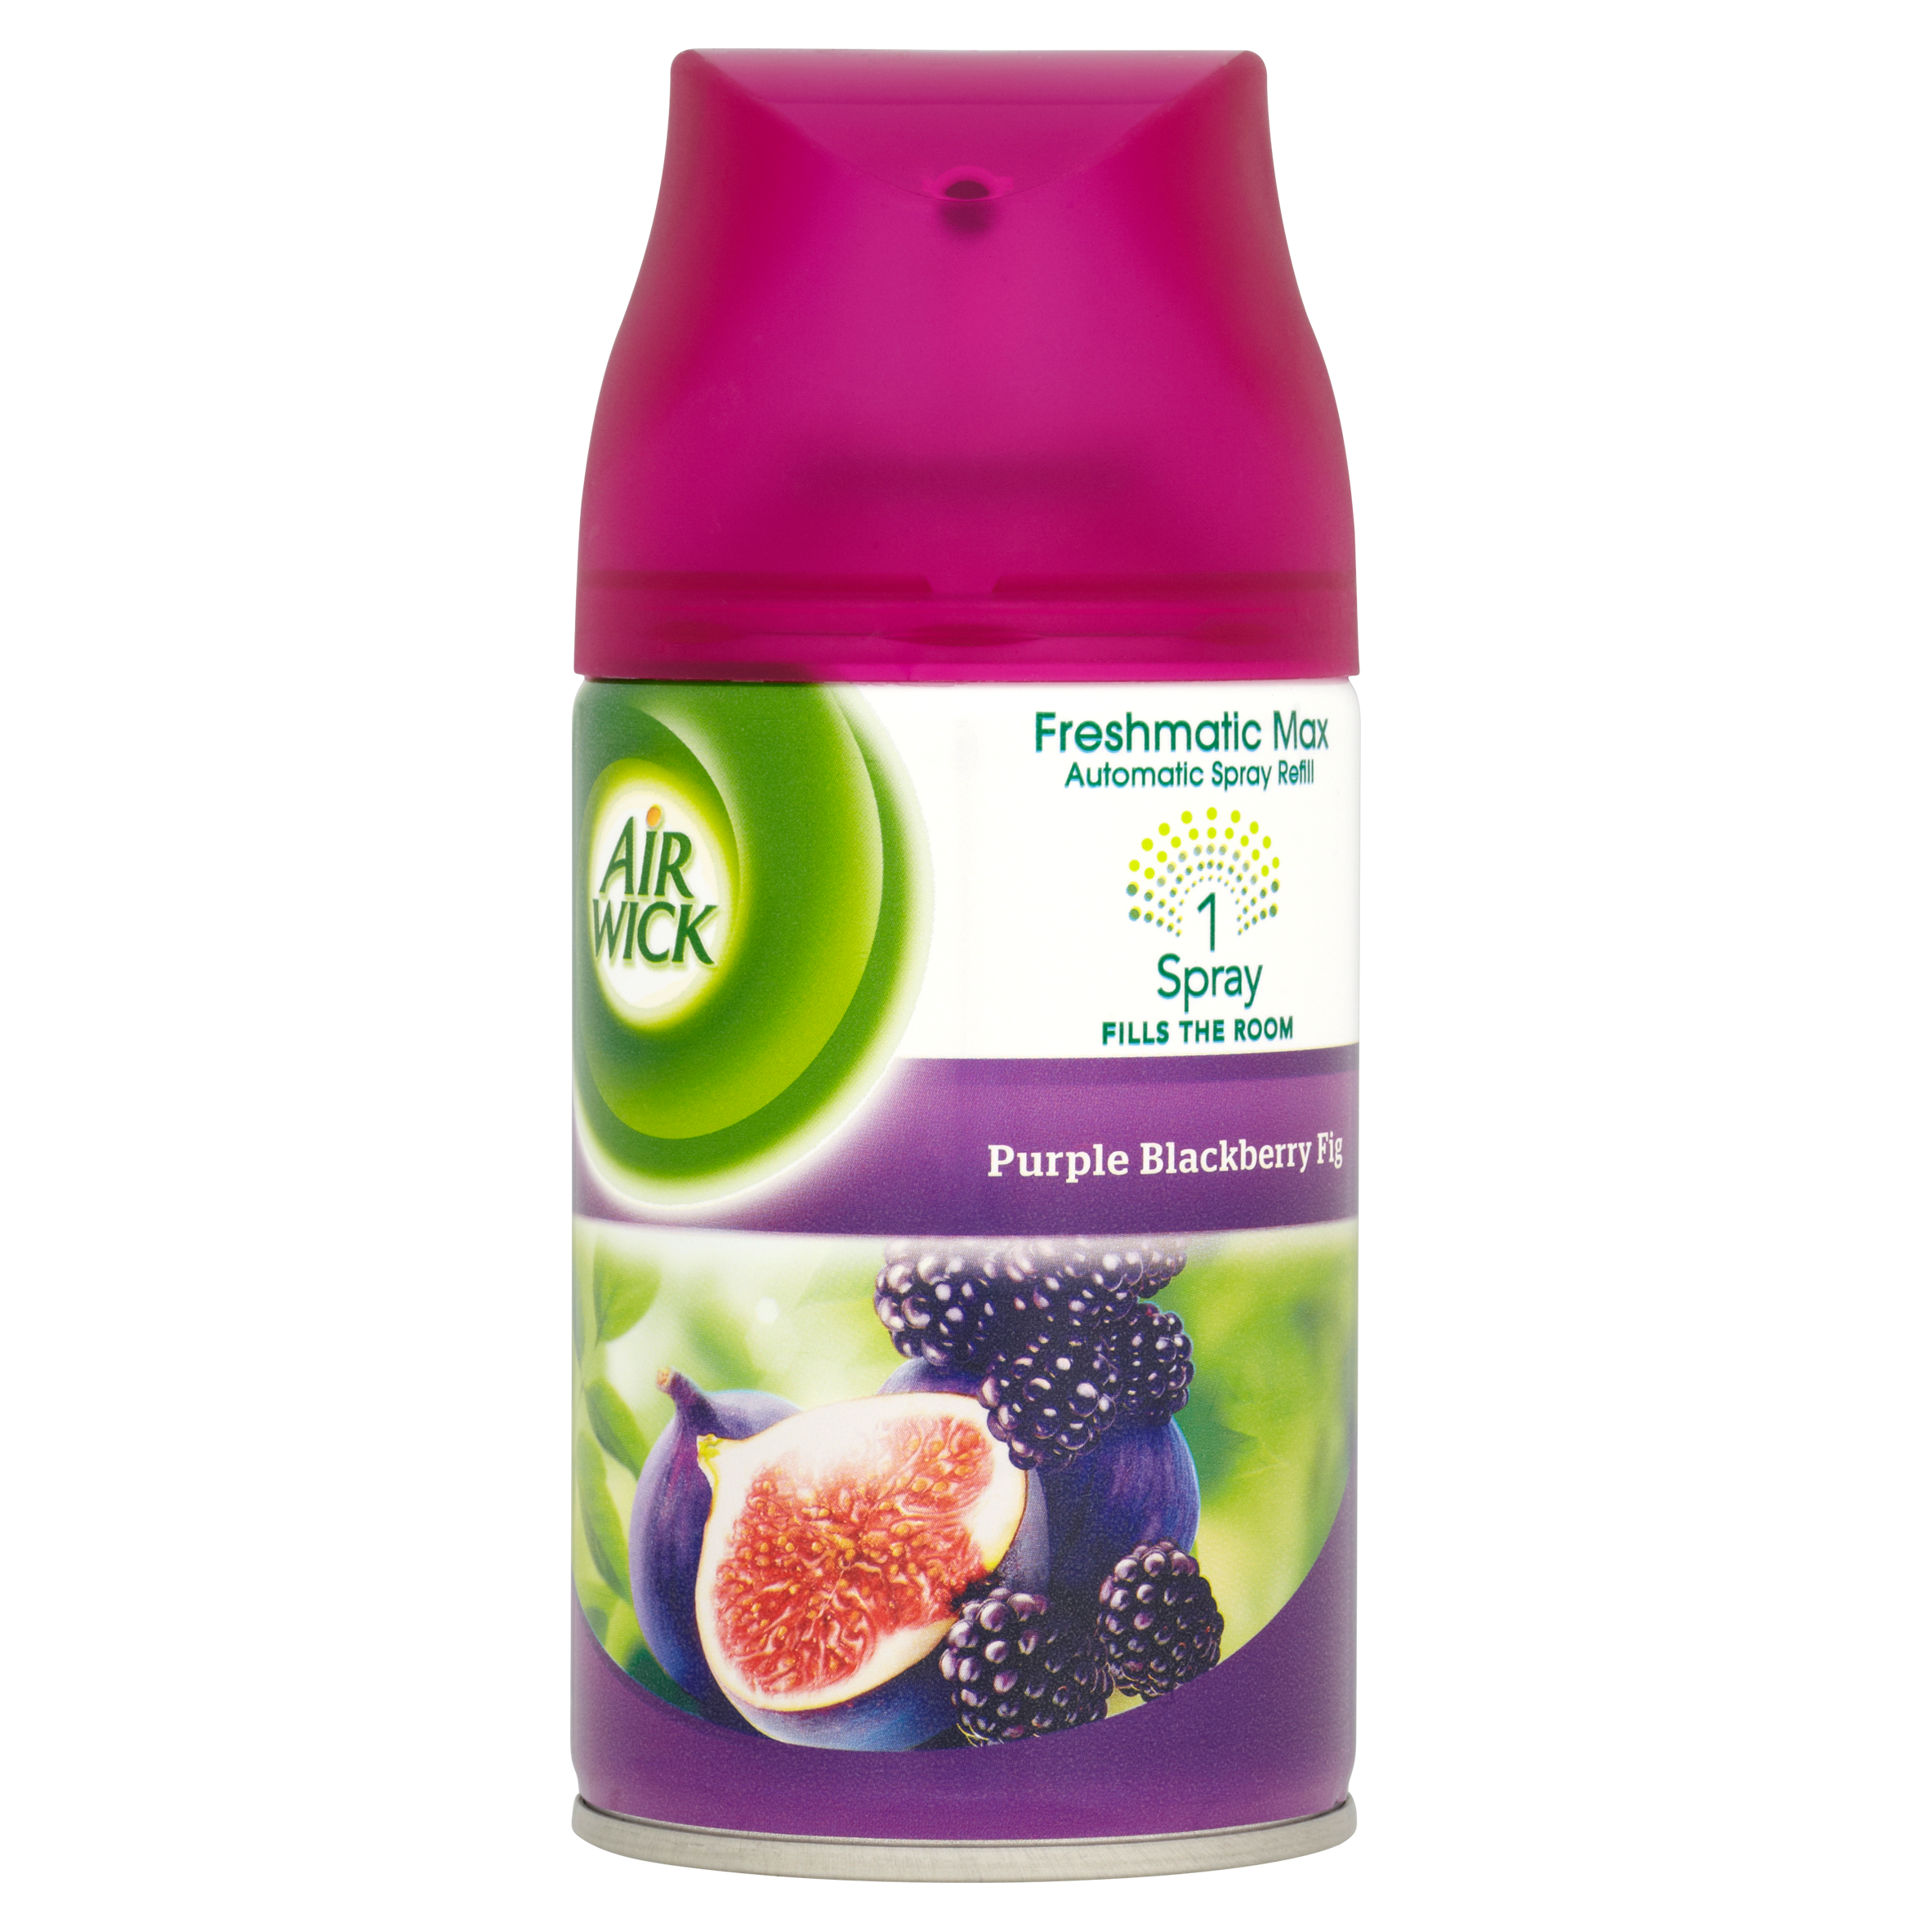 Air Wick Freshmatic Max Refill Purple Blackberry Fig